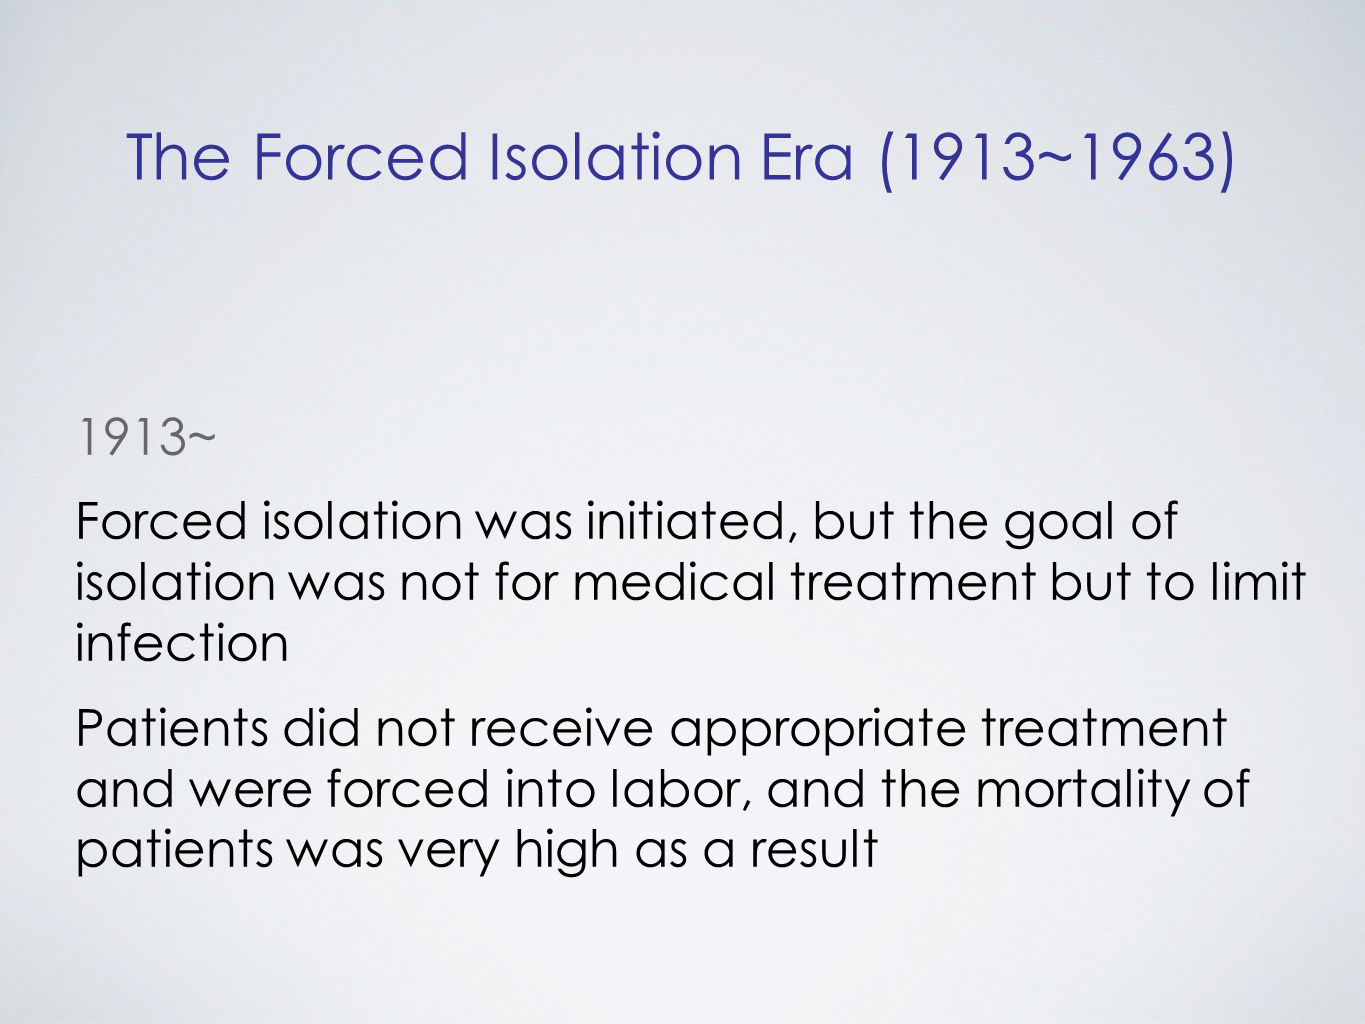 The Forced Isolation Era (1913~1963) 1913~ Forced isolation was initiated, but the goal of isolation was not for medical treatment but to limit infection Patients did not receive appropriate treatment and were forced into labor, and the mortality of patients was very high as a result